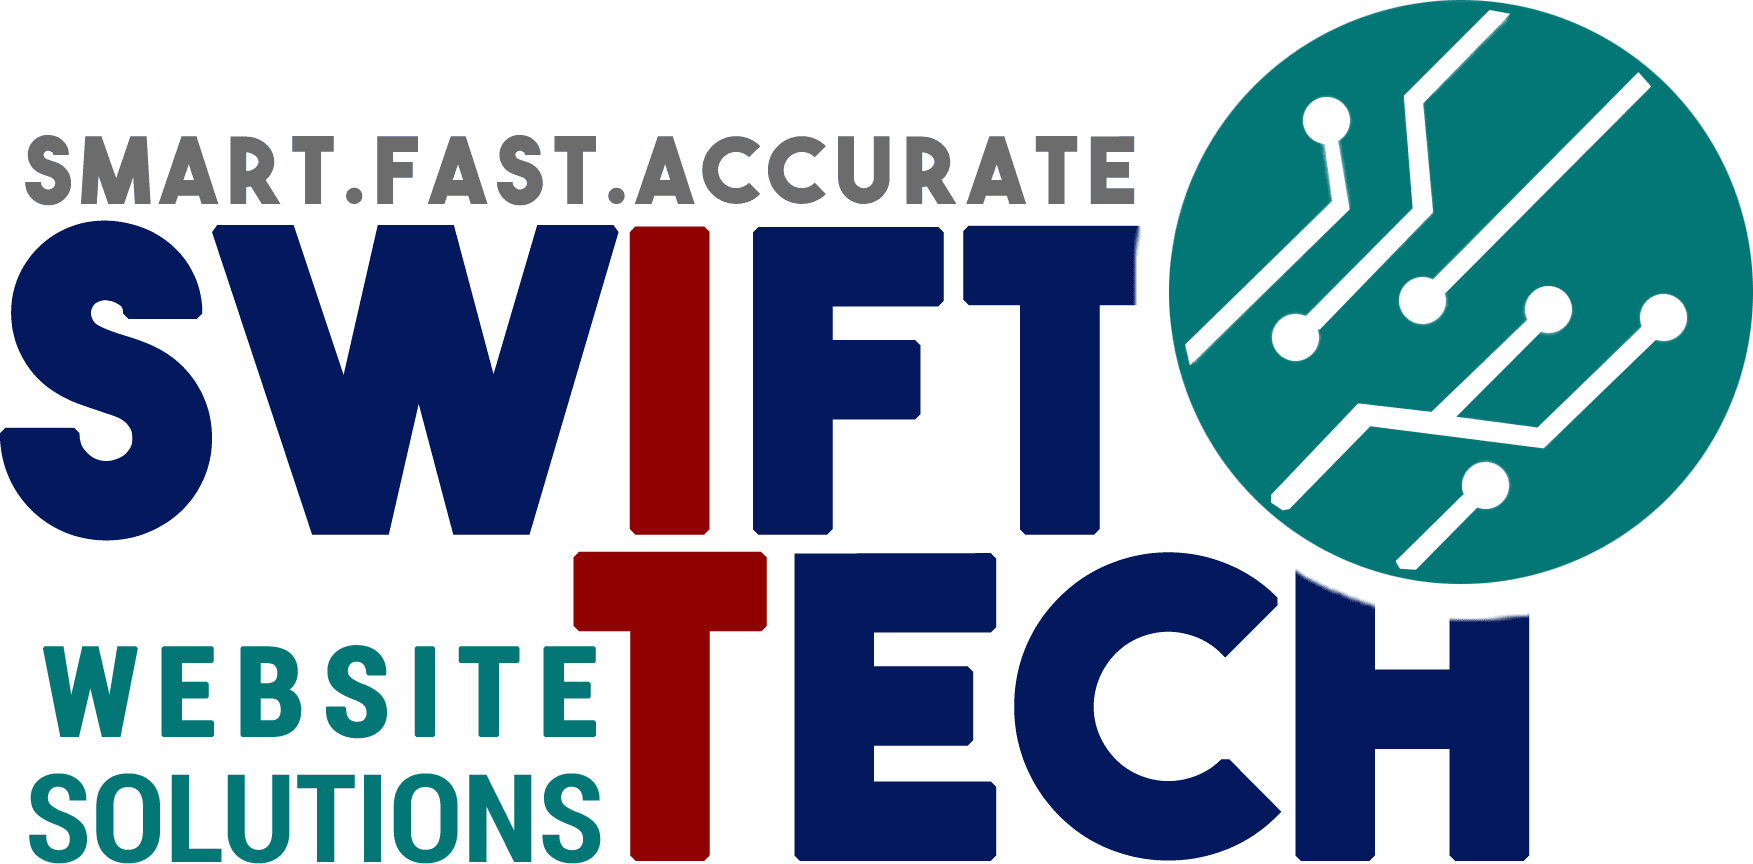 SwiftTech Website Solutions